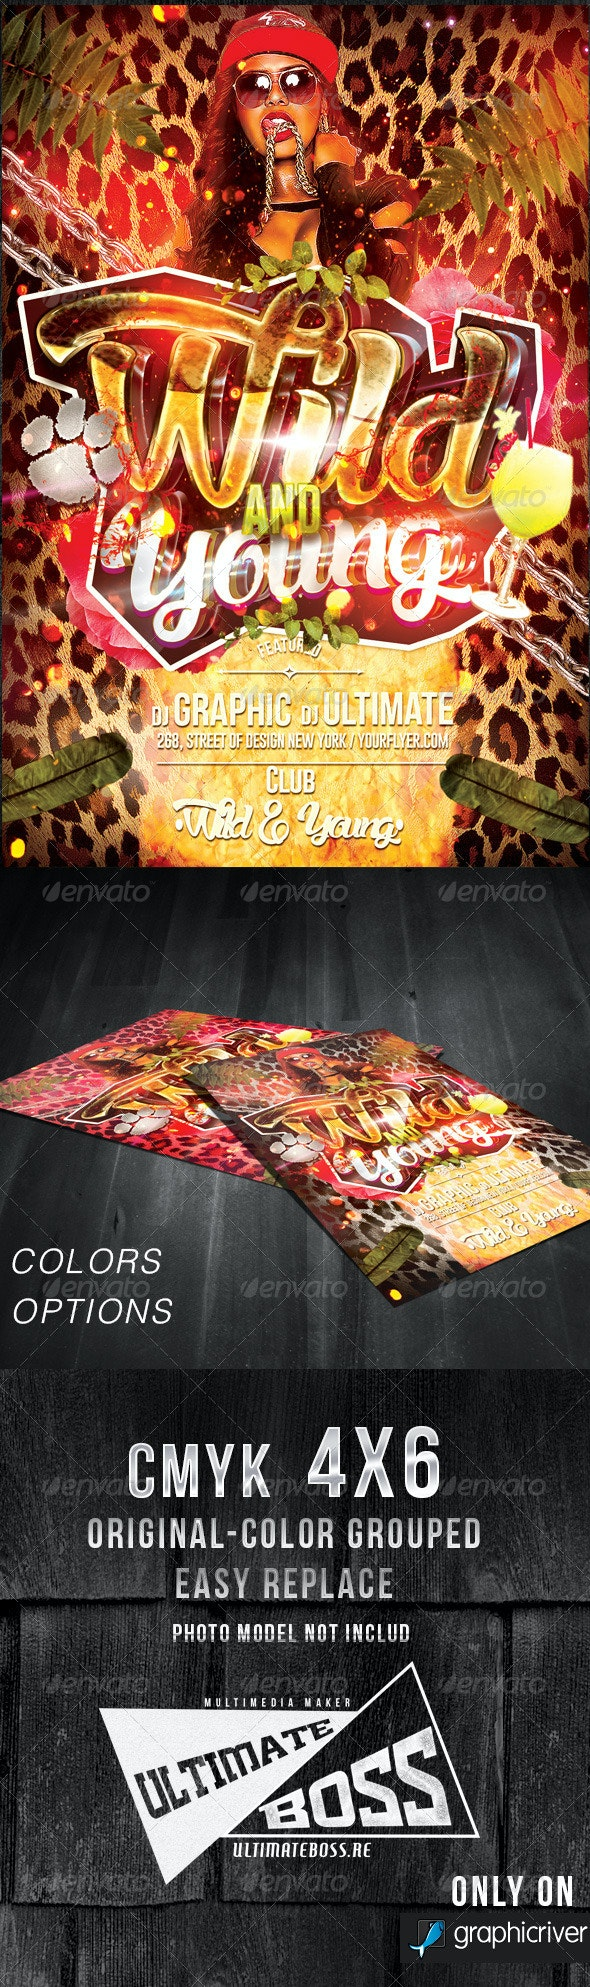 Wild and Young Flyer Template - Flyers Print Templates